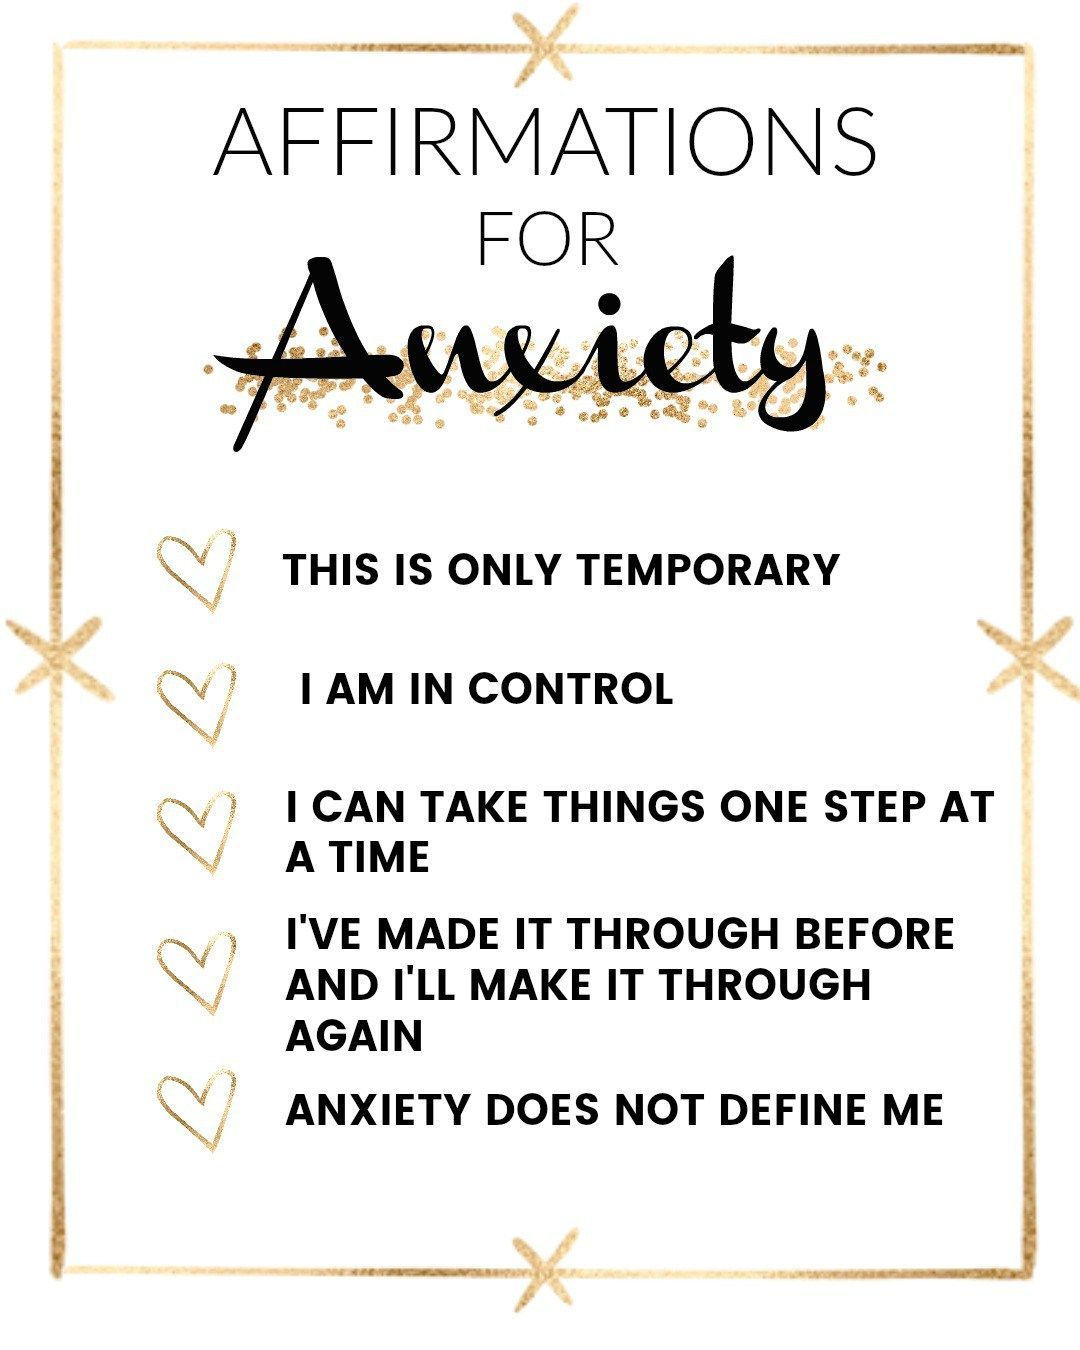 how to get rid of anger and anxiety